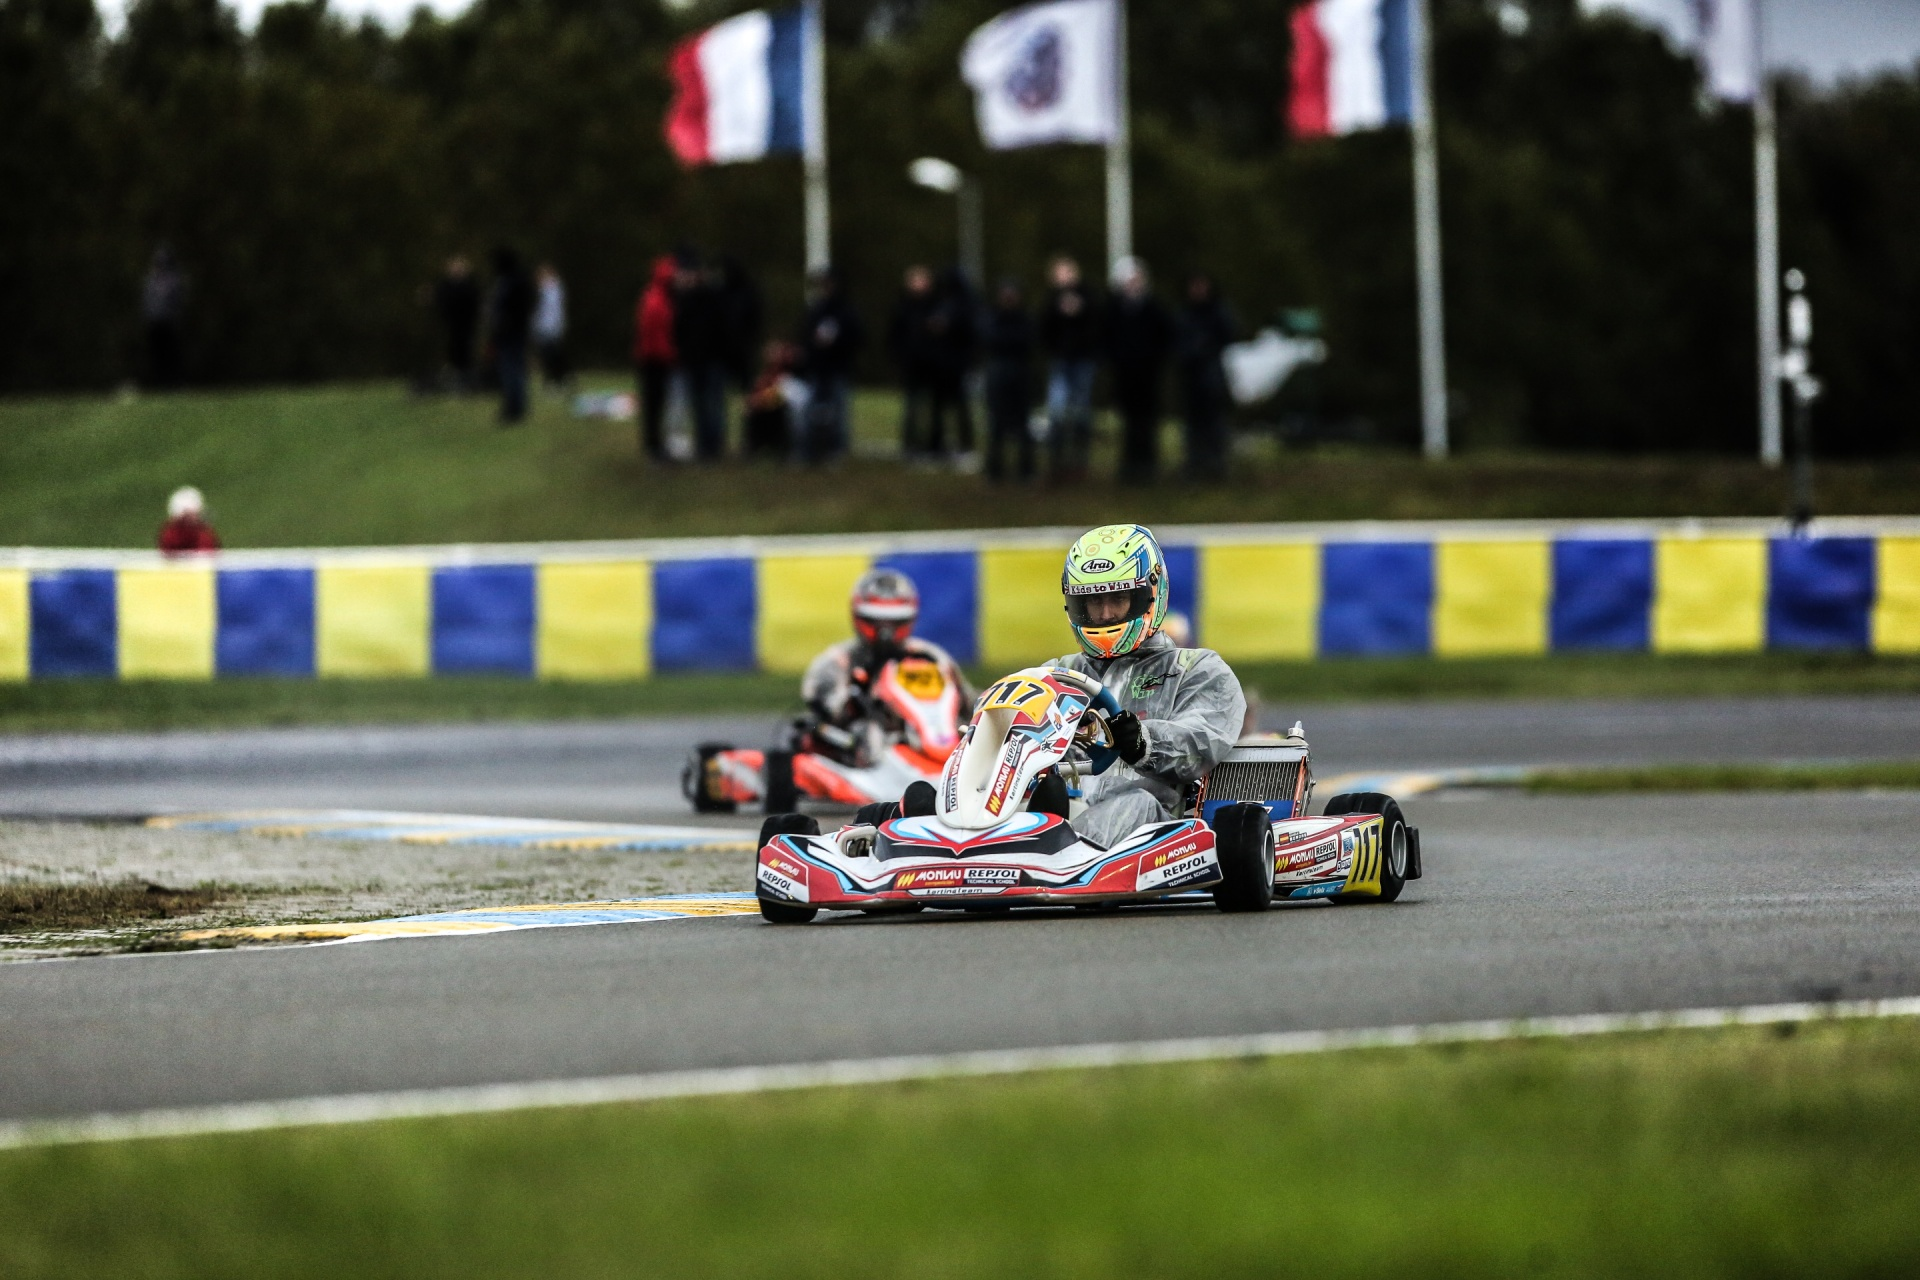 Iame International Final: positiva conclusión para nuestros pilotos